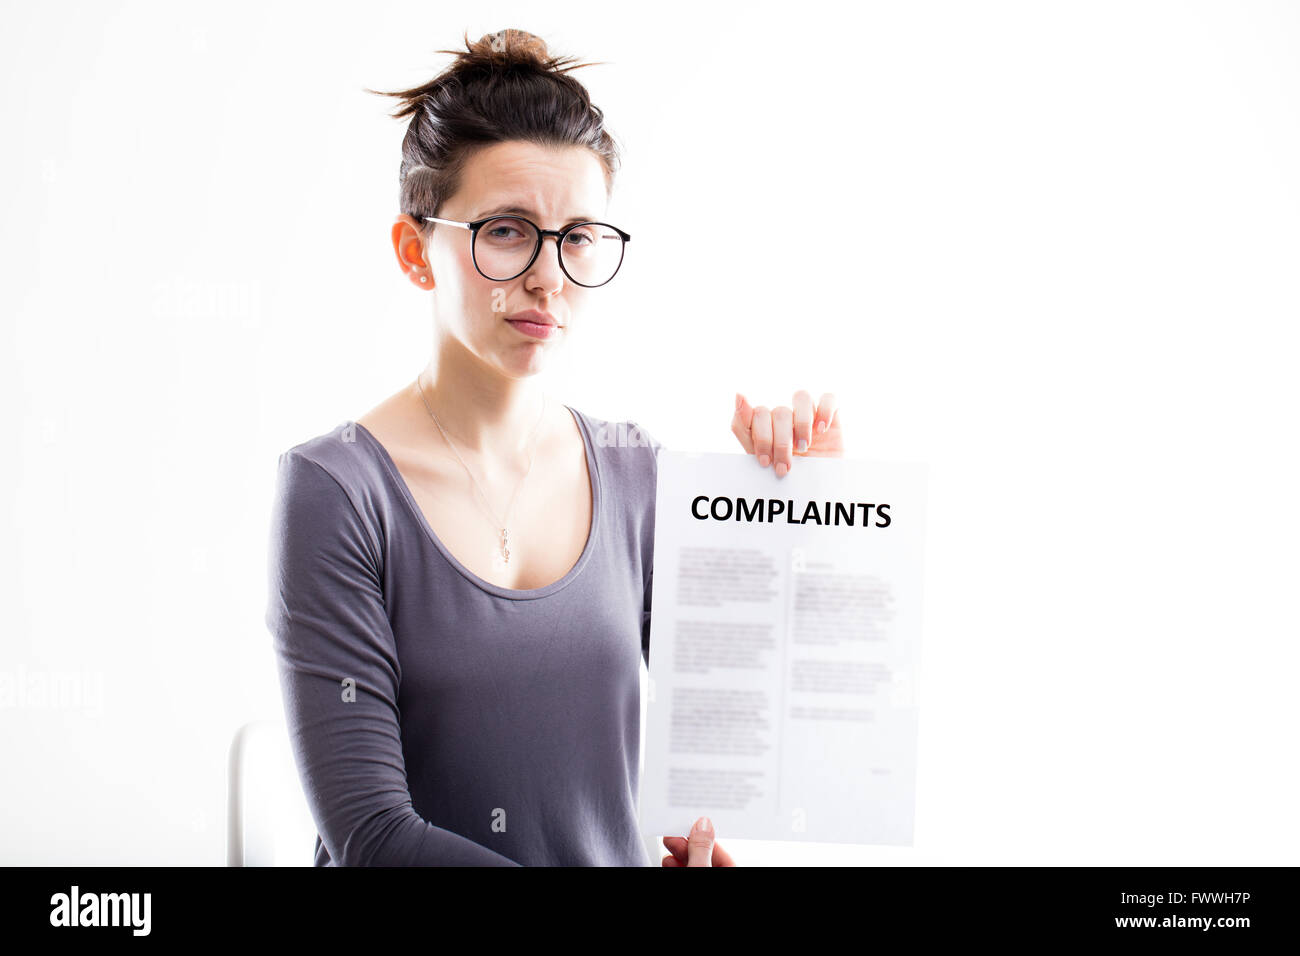 sad woman showing just received complaints and thinking what to do to solve the problem - Stock Image